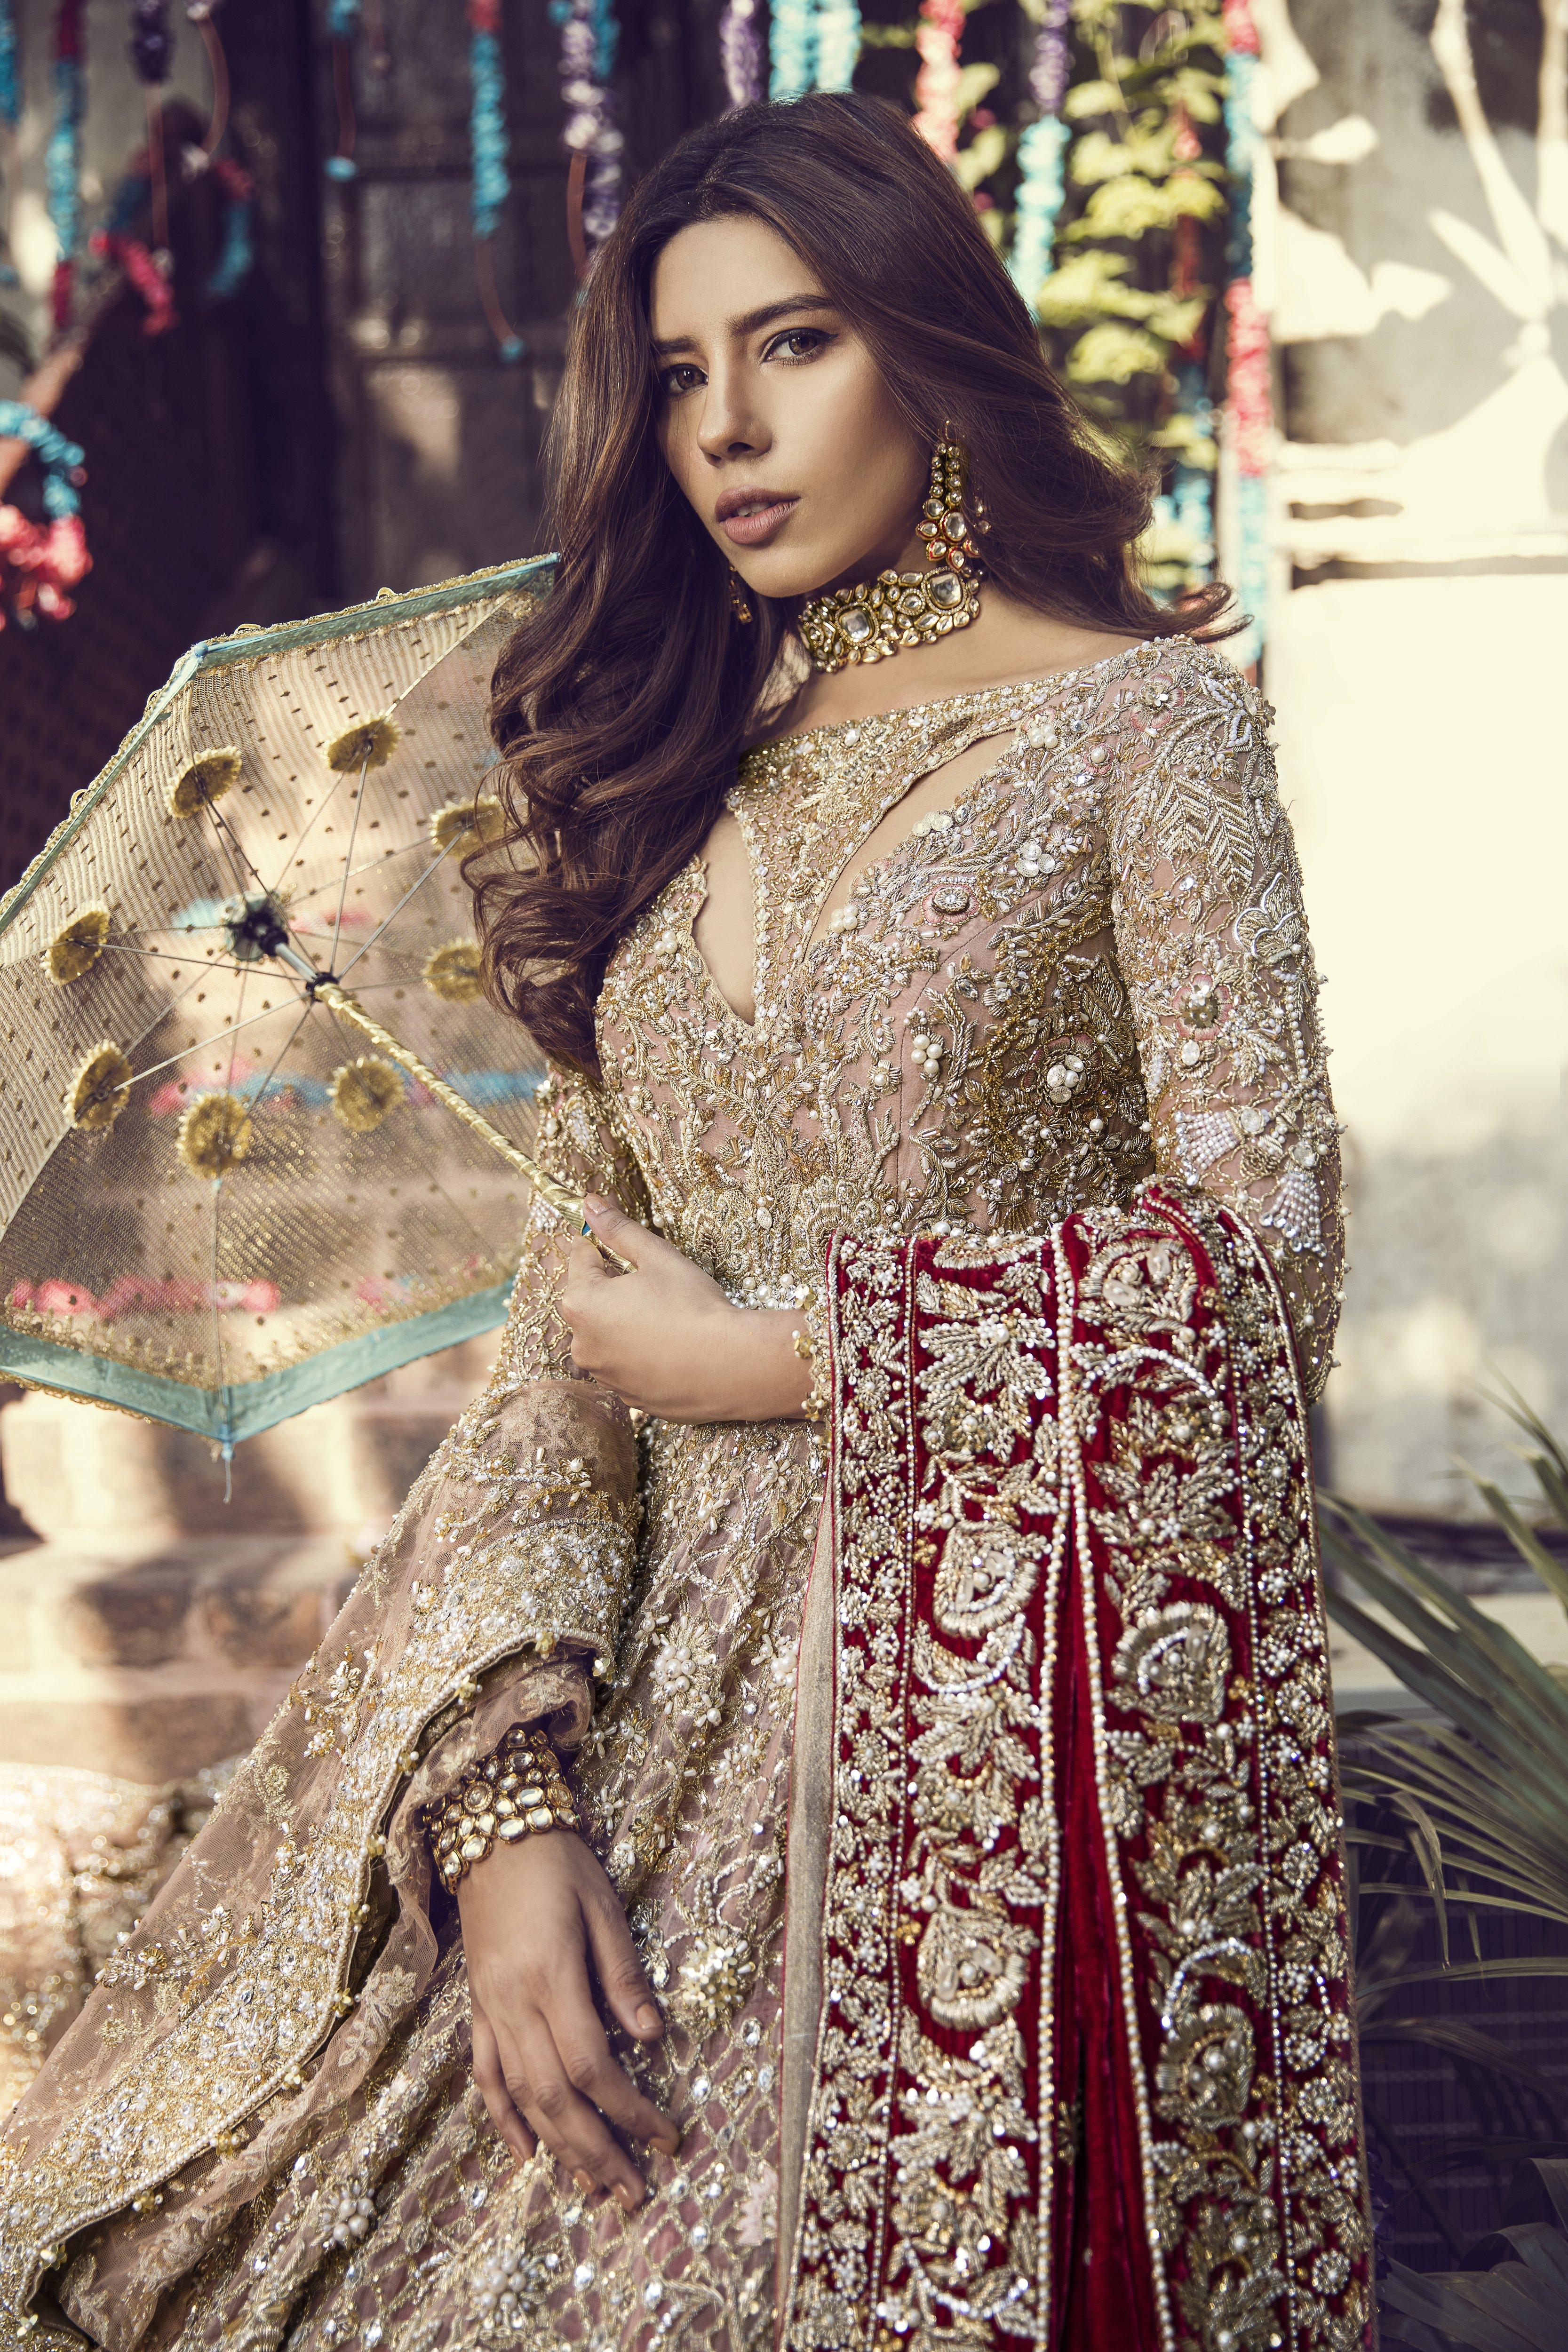 Beautiful Heavily Embroidered Pink Pakistani Bridal Dress By Suffuse By Sana Yasir Online Shopping In Pakistan